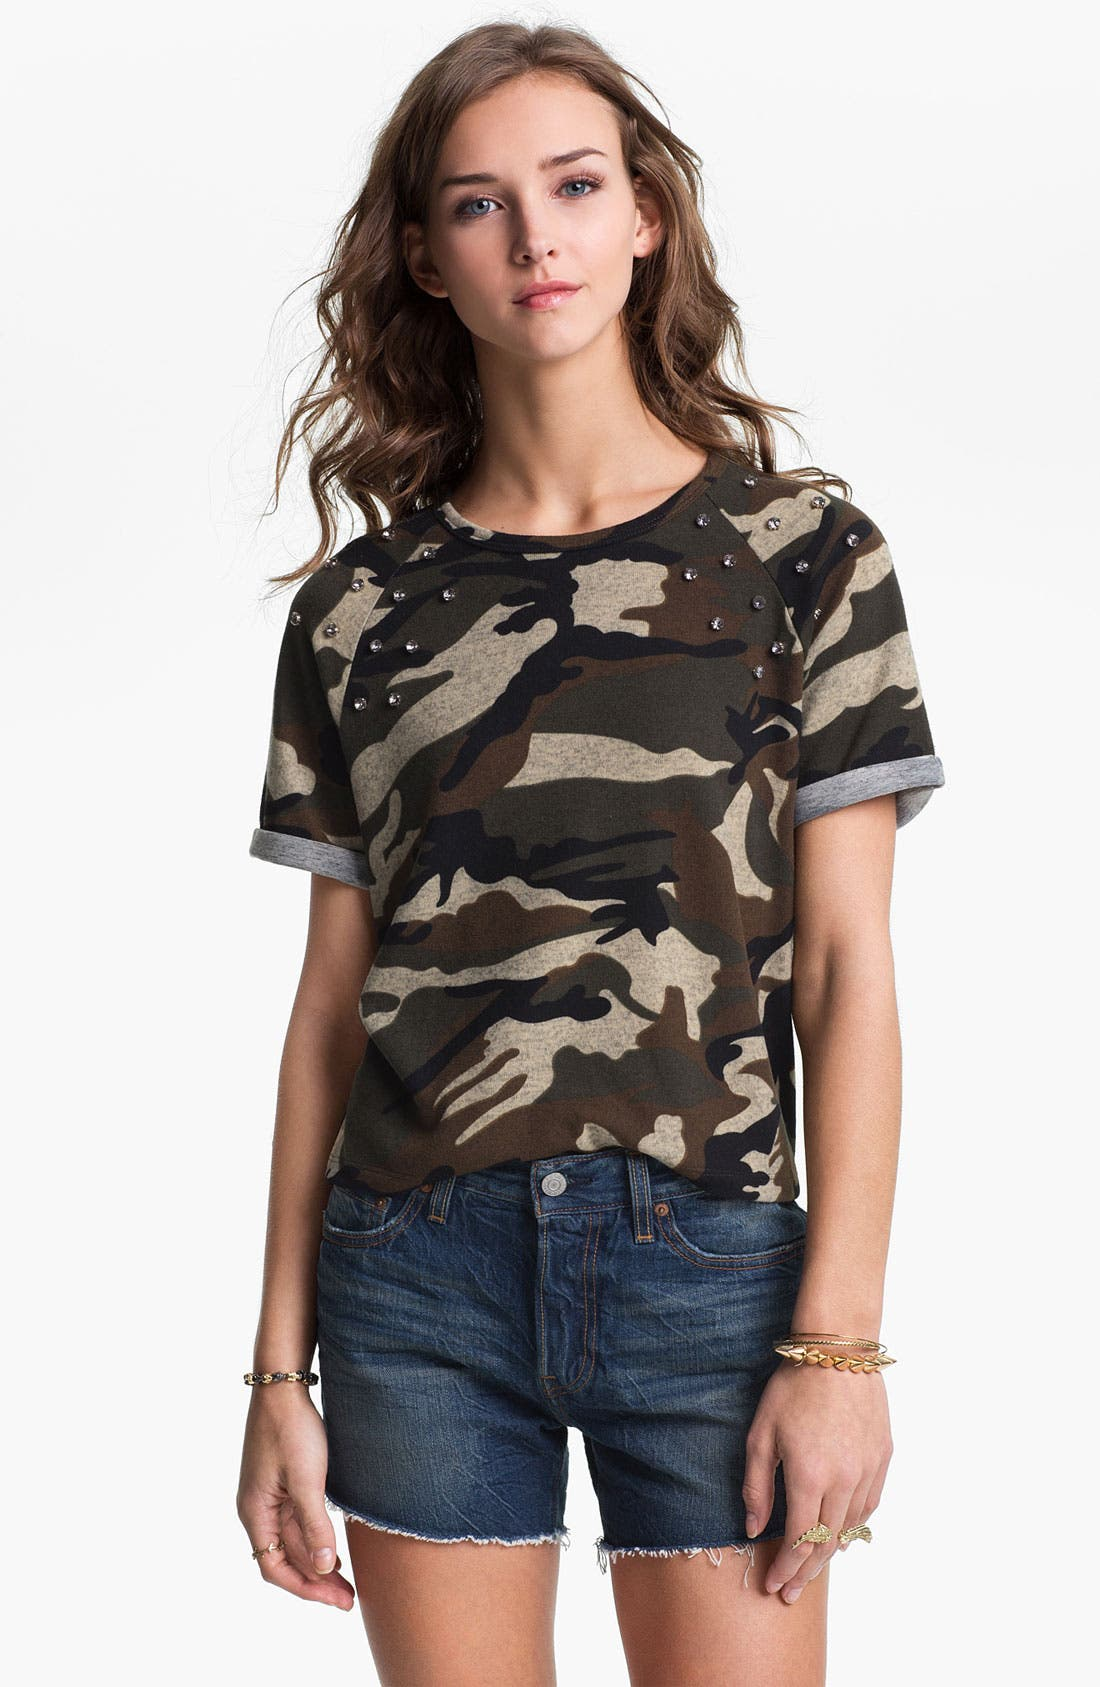 Alternate Image 1 Selected - Elodie Rhinestone Stud Camo Tee (Juniors)